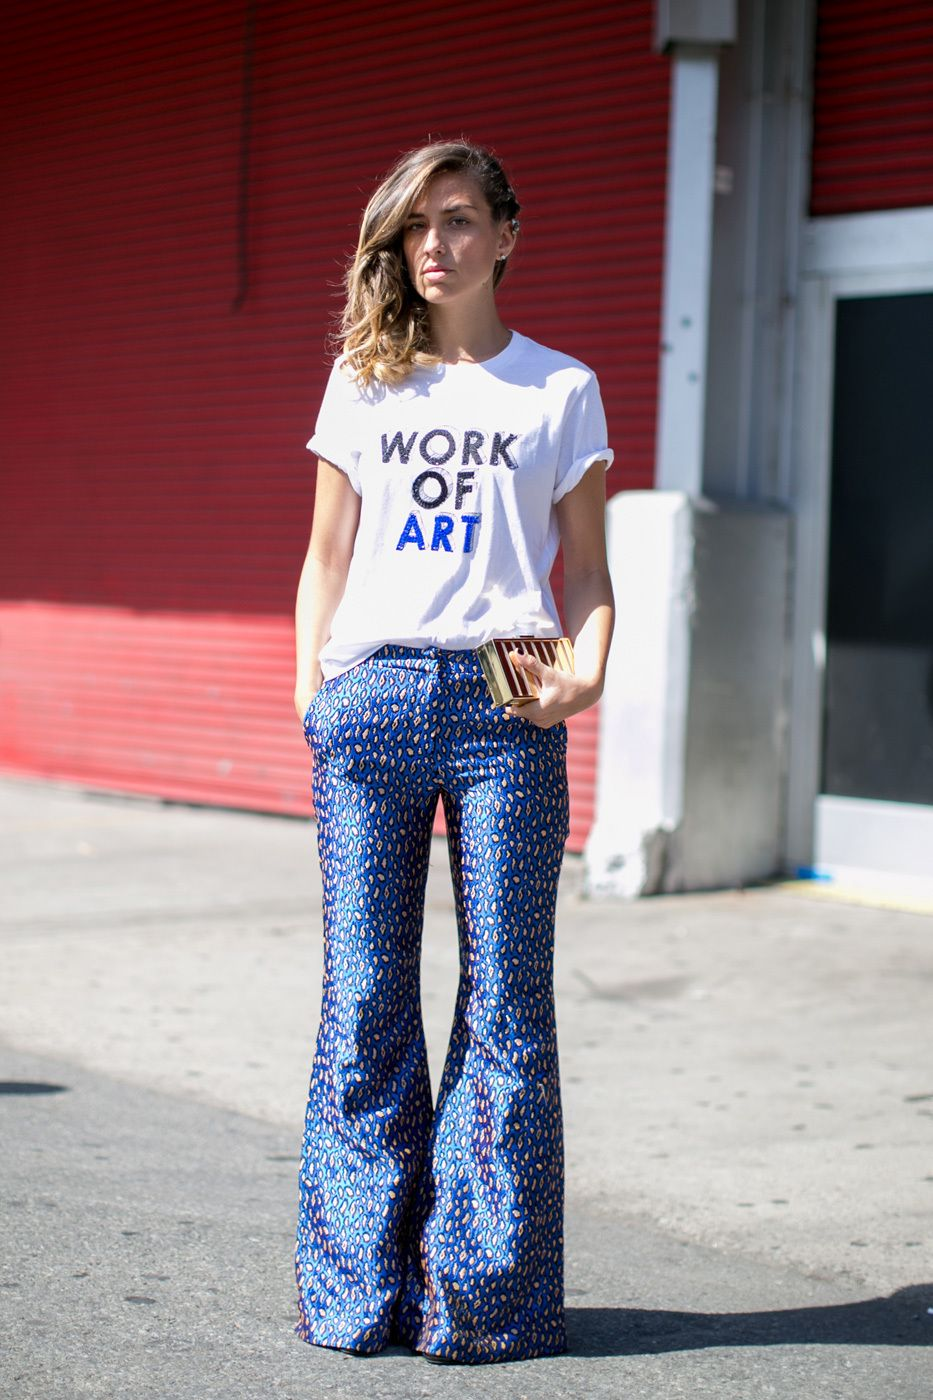 11 Foolproof Tips for Finding Your Most FlatteringJeans